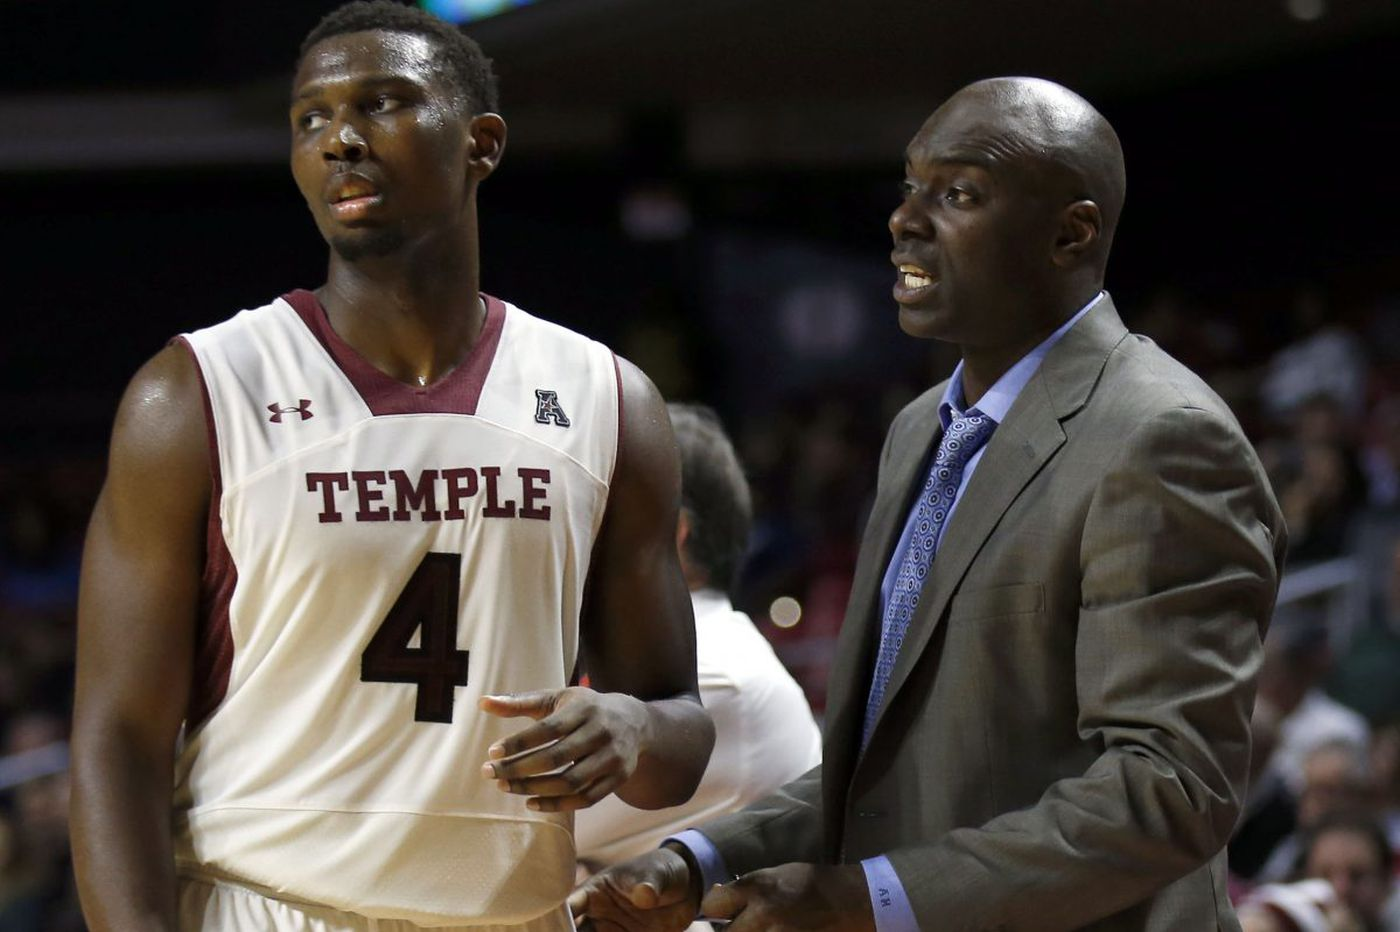 Aaron McKie bio: What you need to know about Temple's coach in waiting